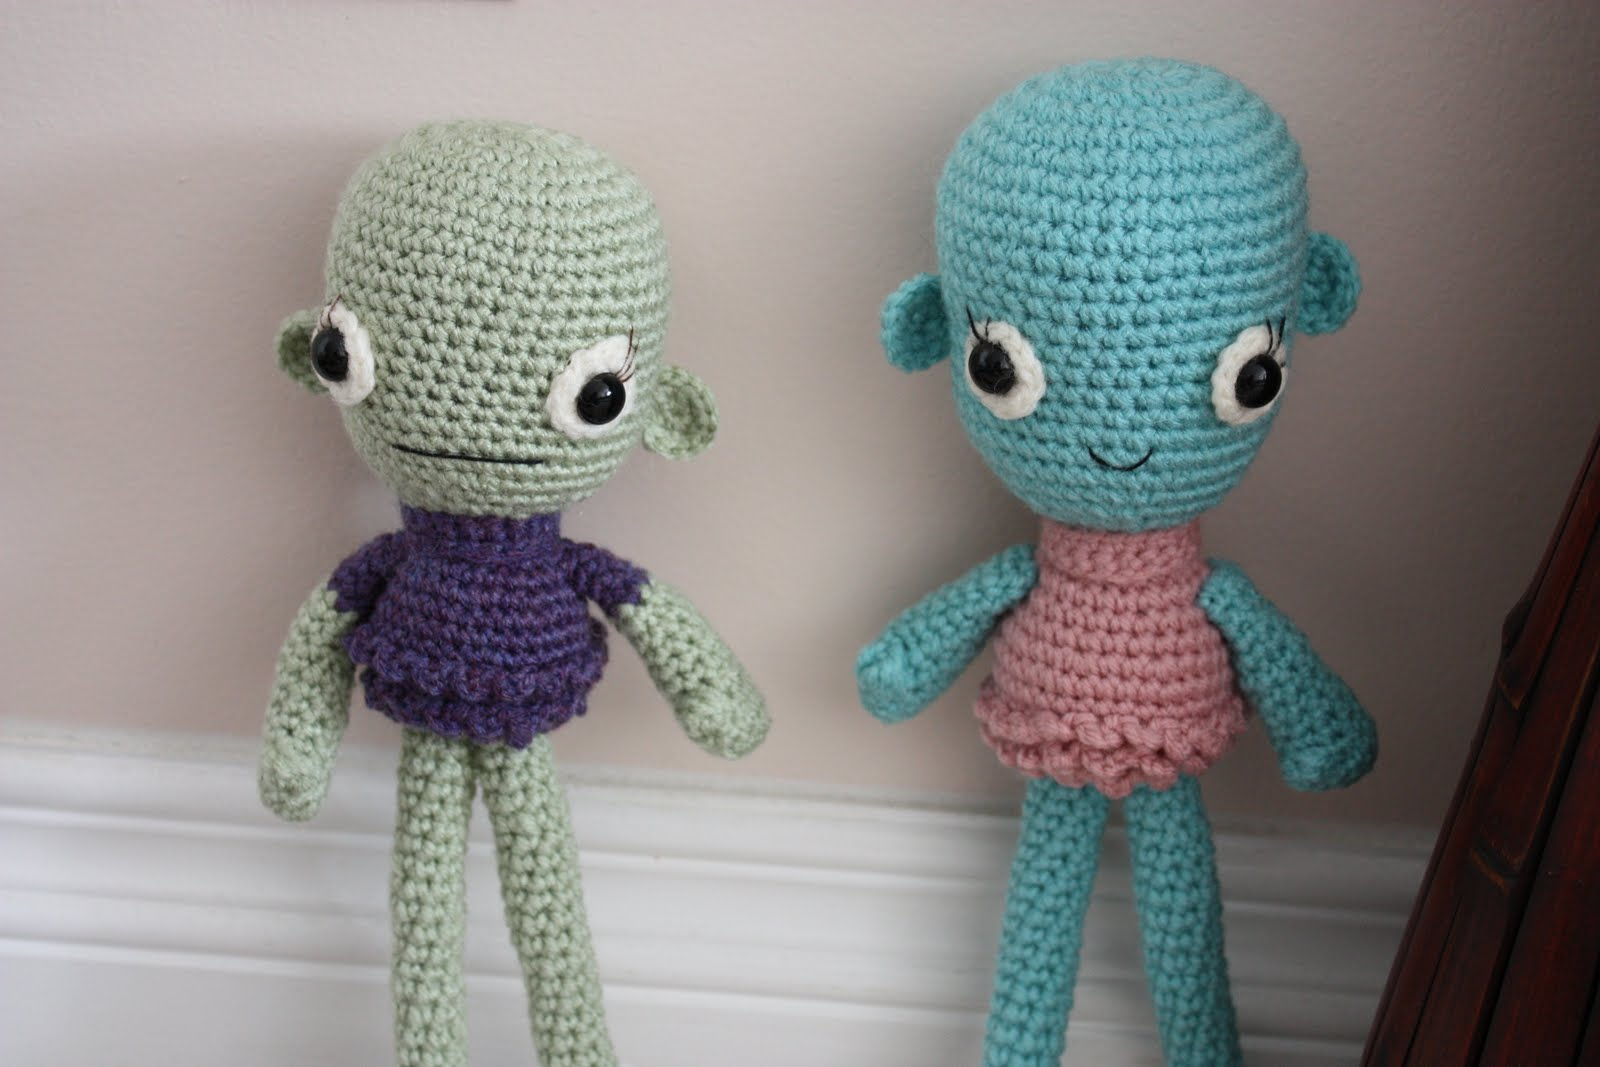 Crochet Patterns Abbreviations : Crochet Pattern Abbreviations Free Patterns For Crochet